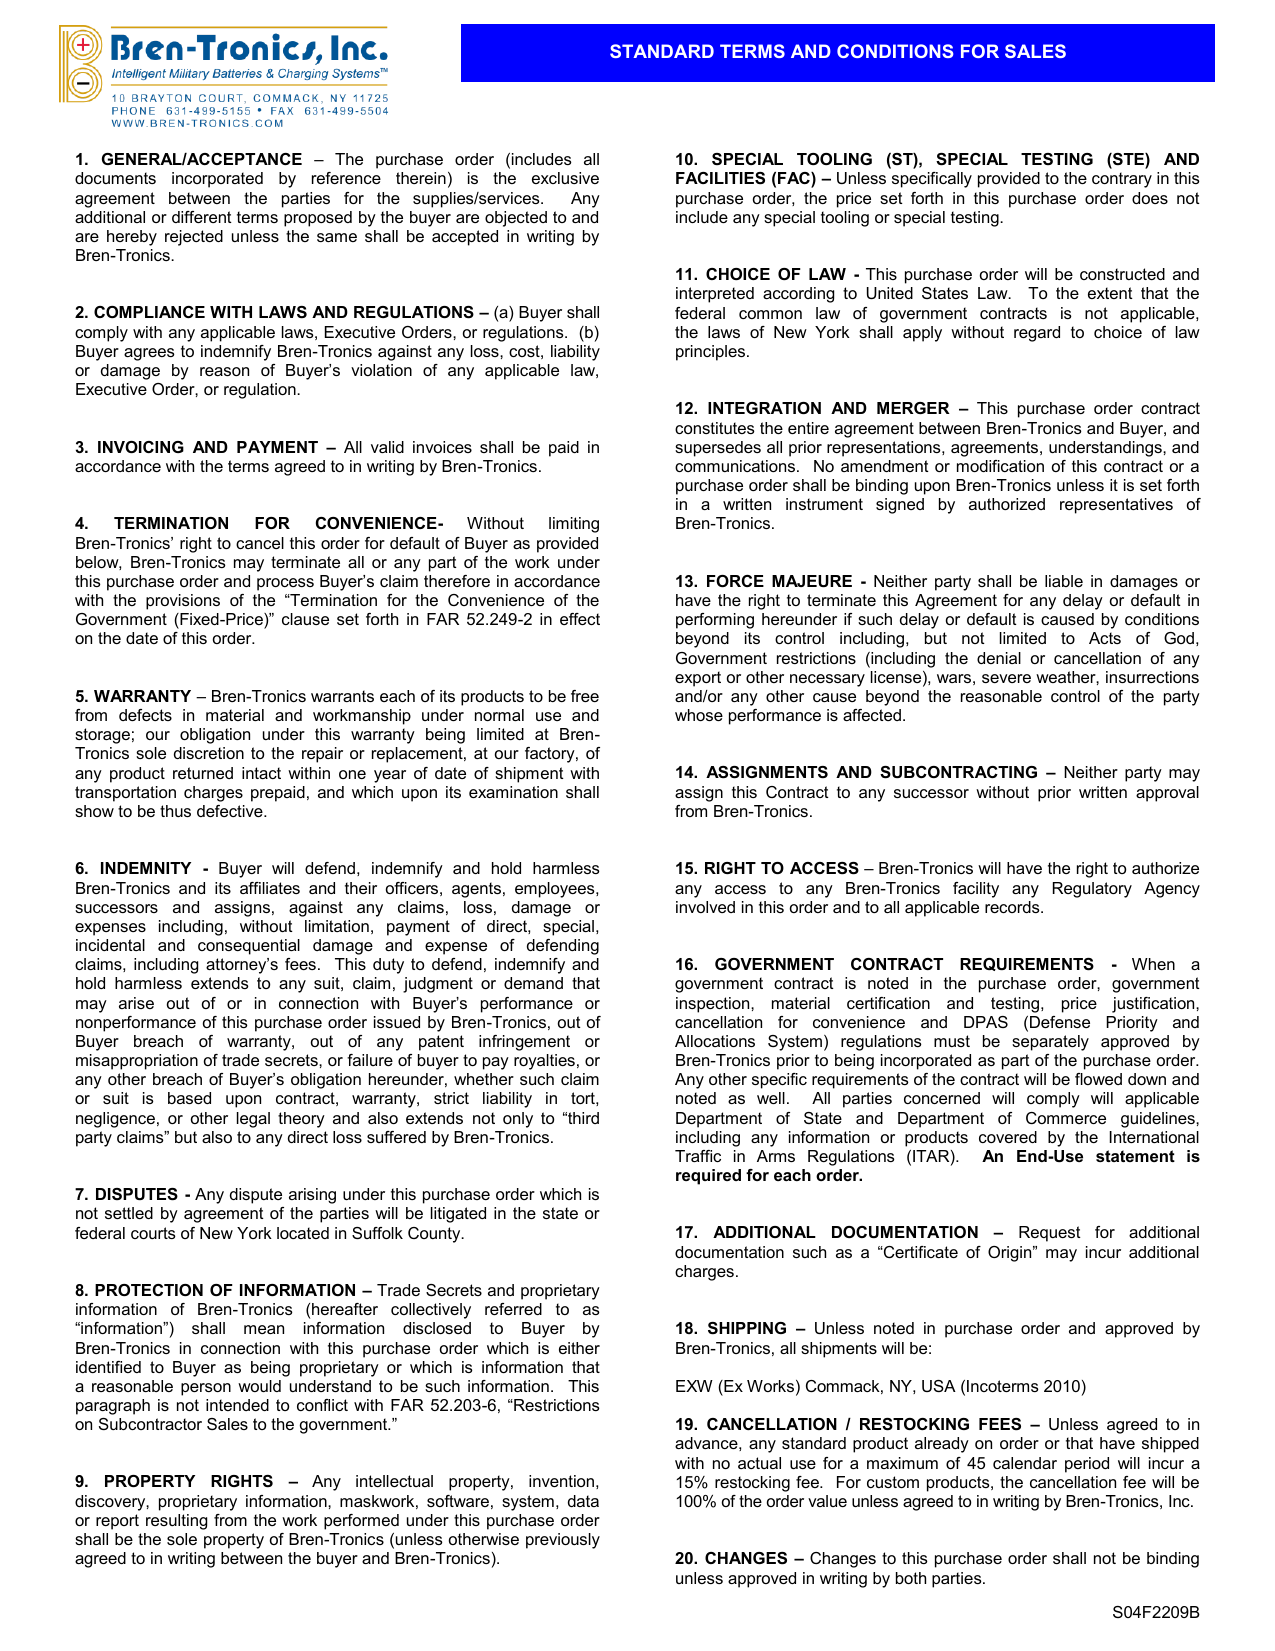 Standard Terms And Conditions For Sales Bren